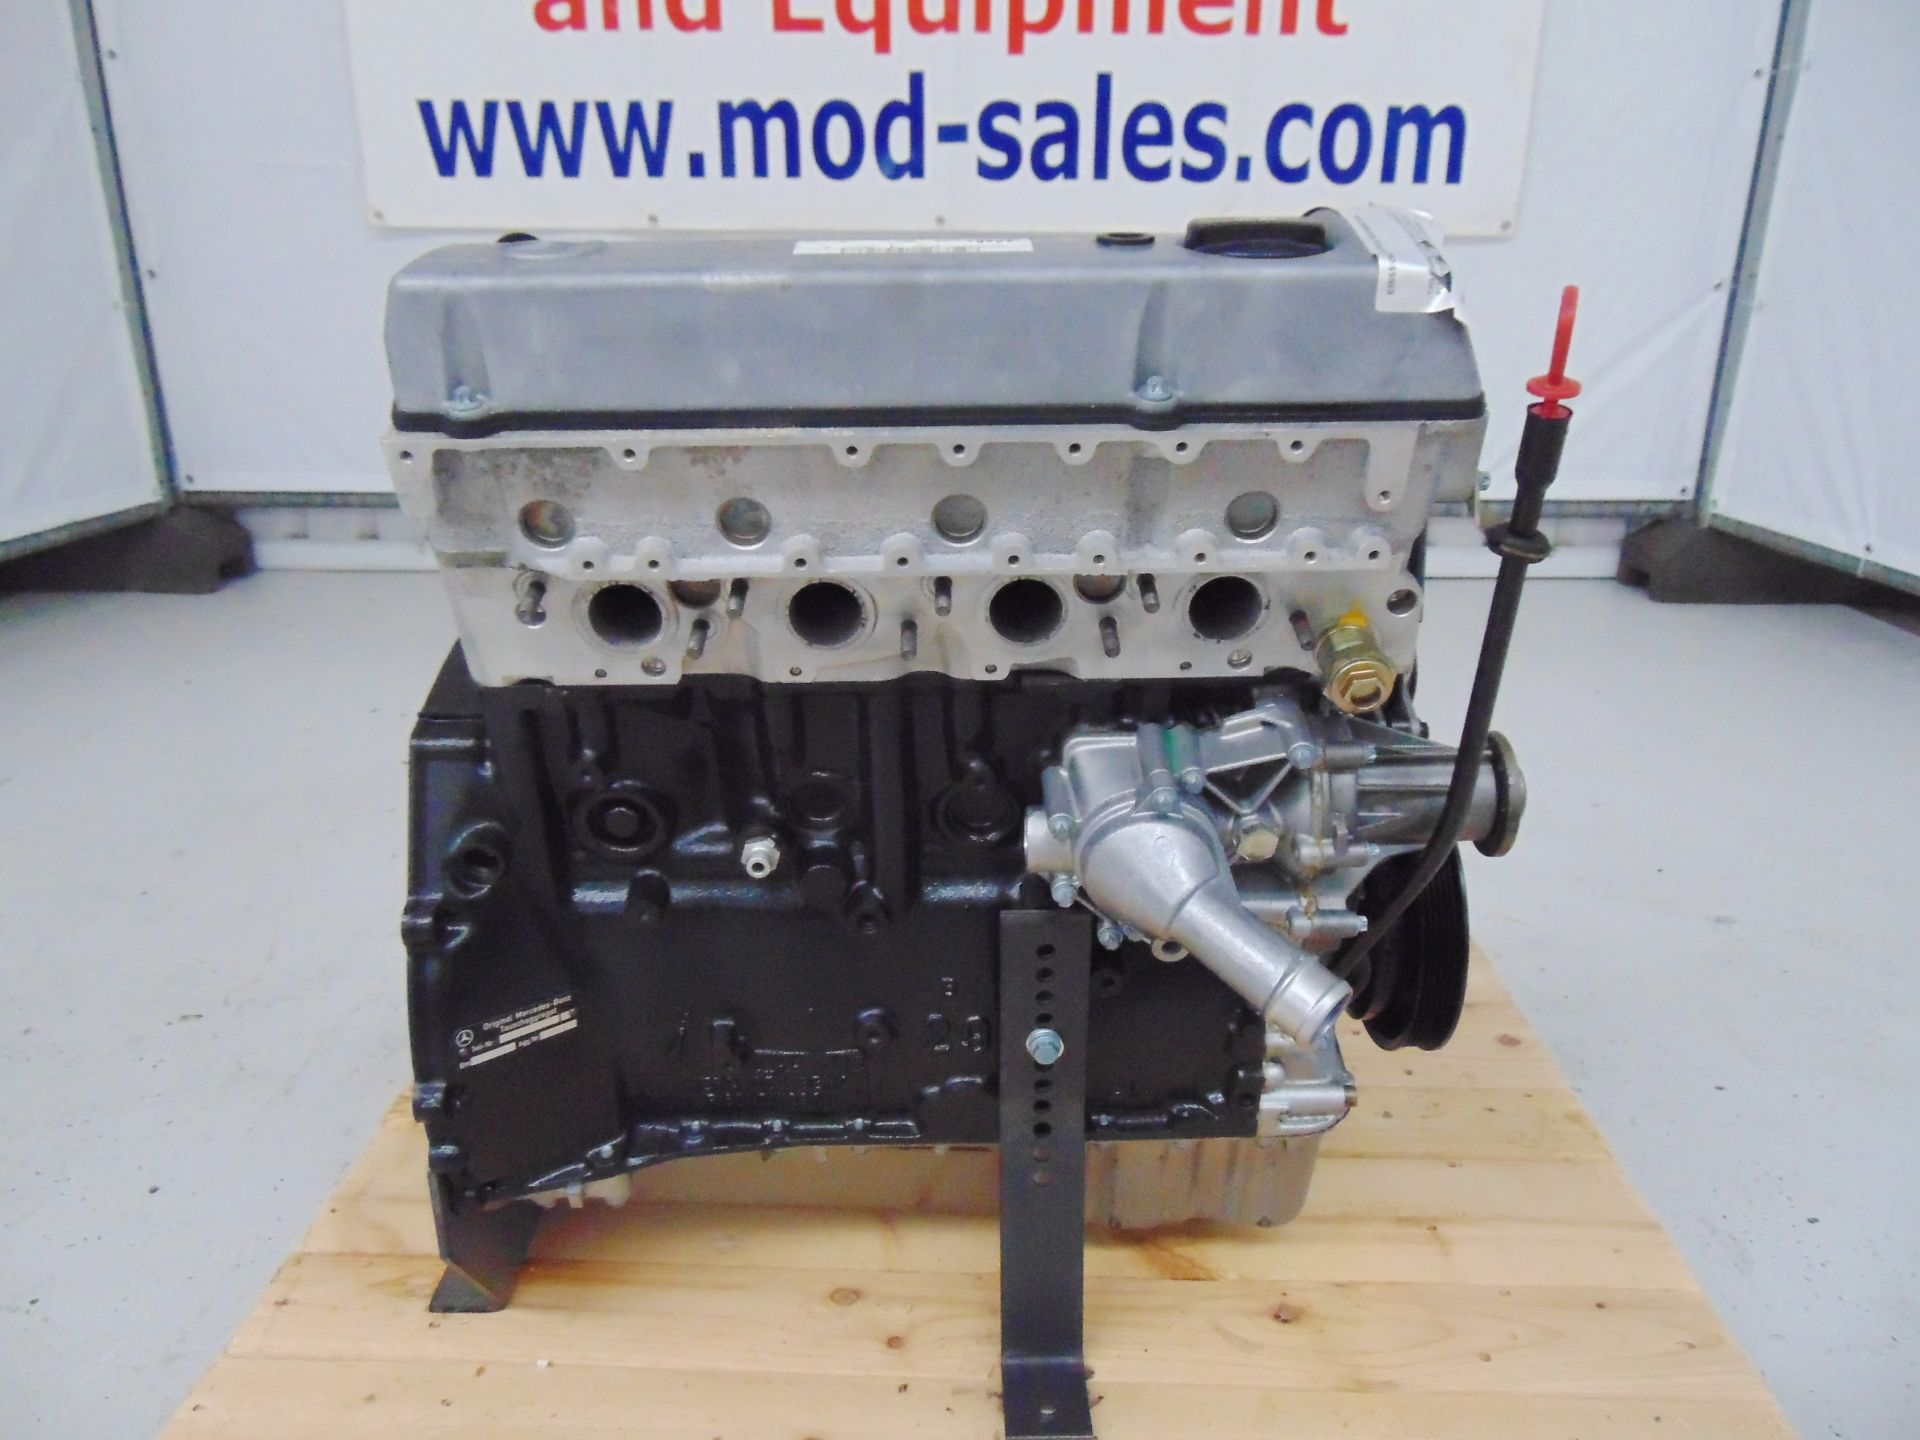 Lot 8 - Brand New & Unused Mercedes-Benz OM601 4 Cylinder 2.0l Diesel Engine C/W Injectors